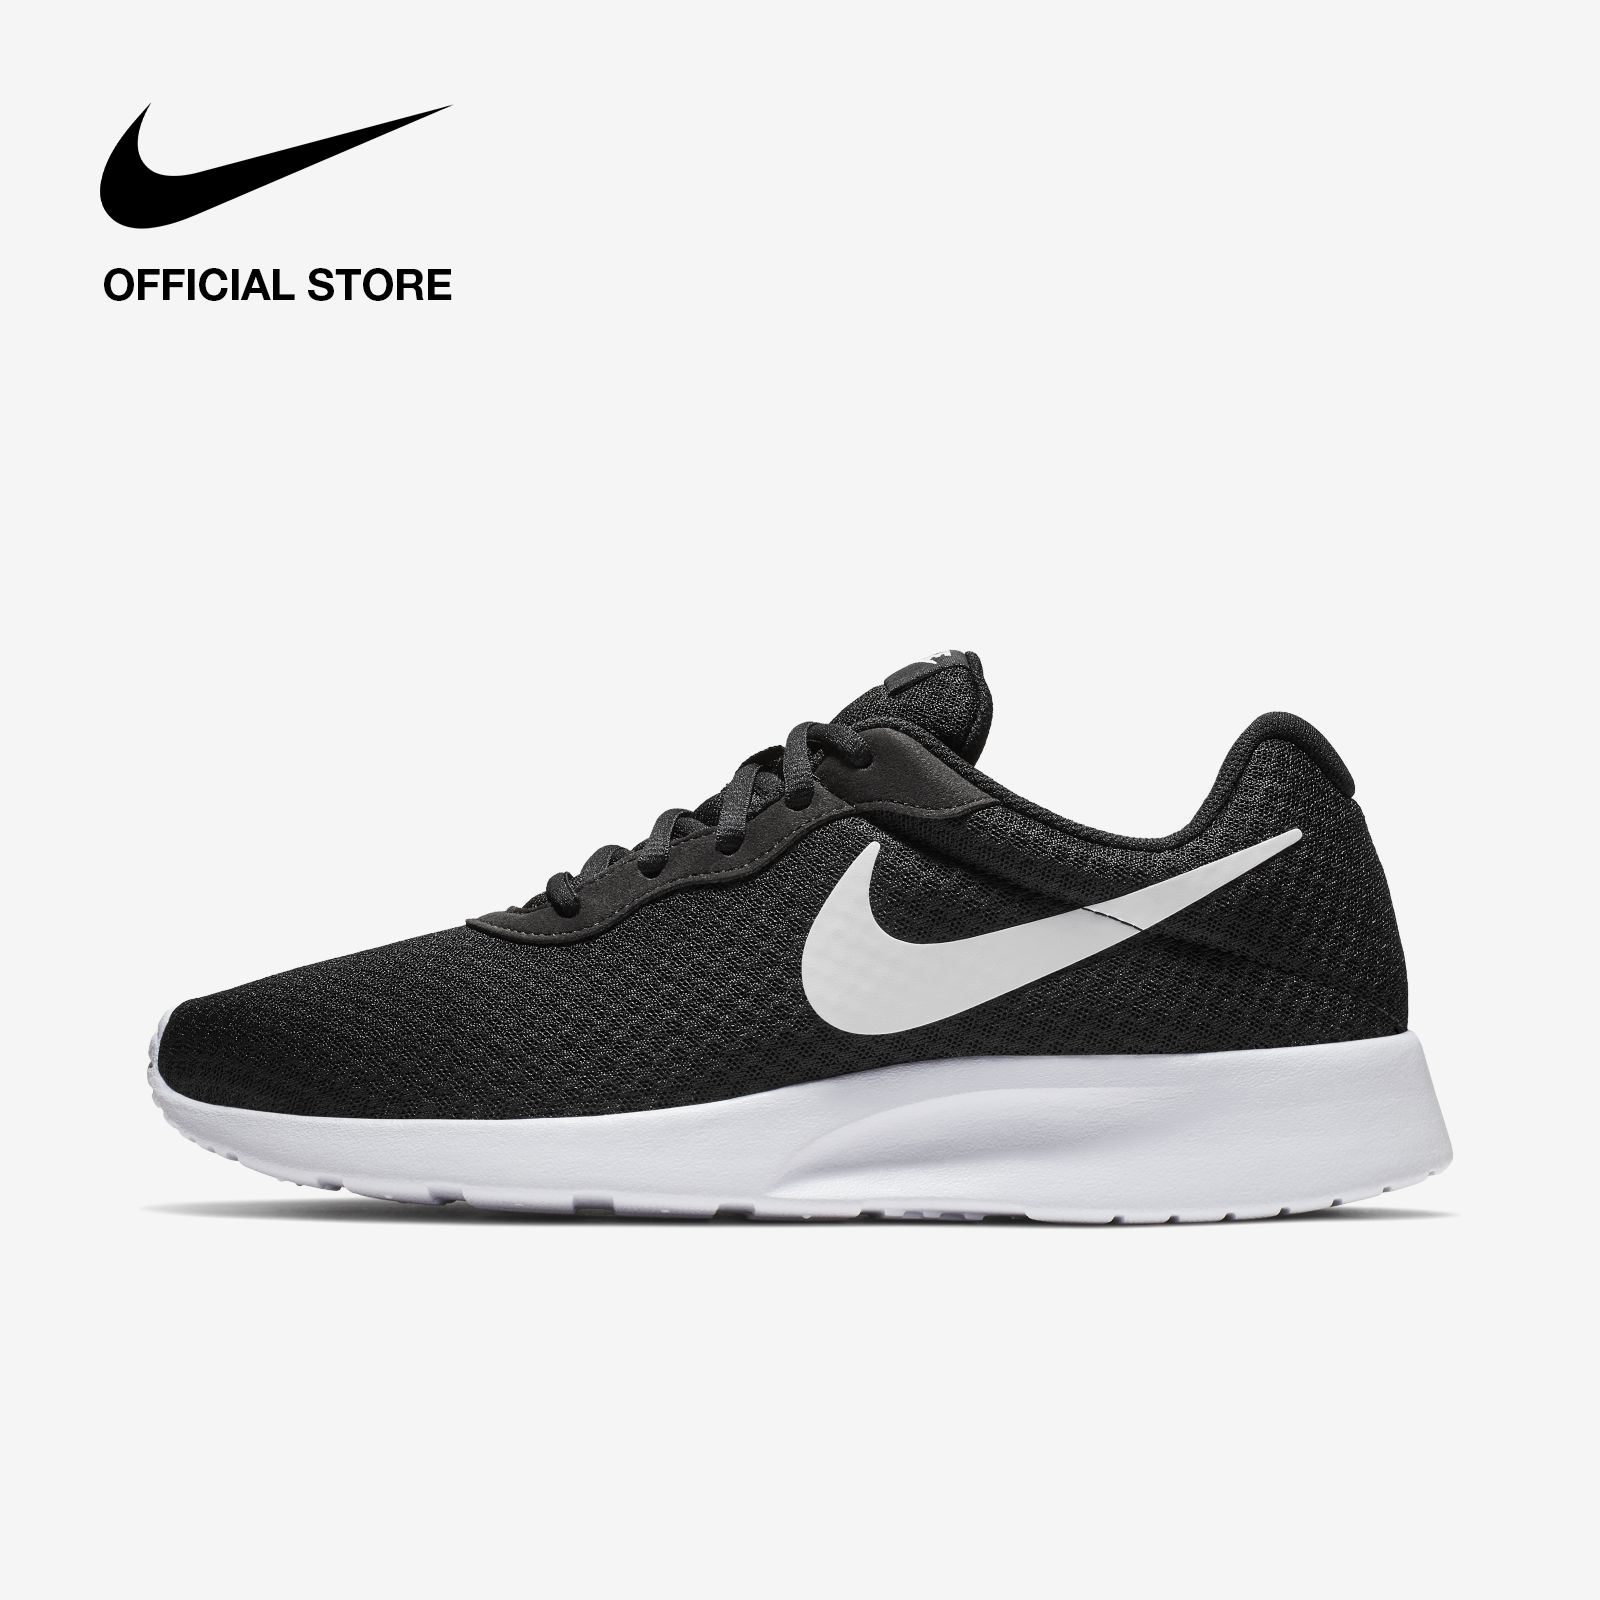 Nike Shoes for Men Philippines - Nike